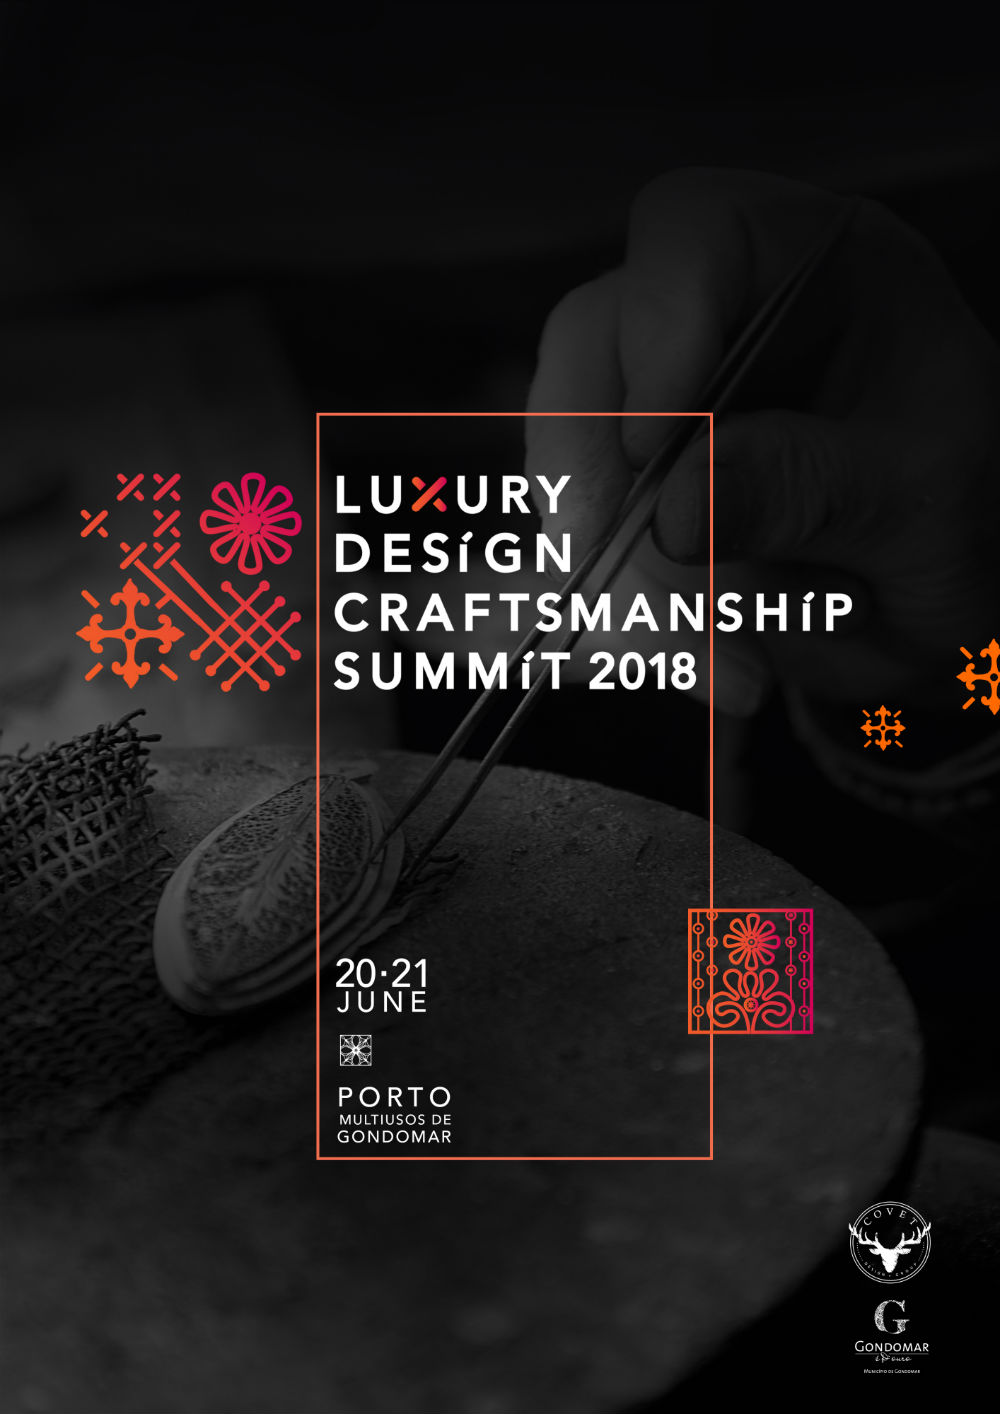 Luxury Design & Craftsmanship Summit